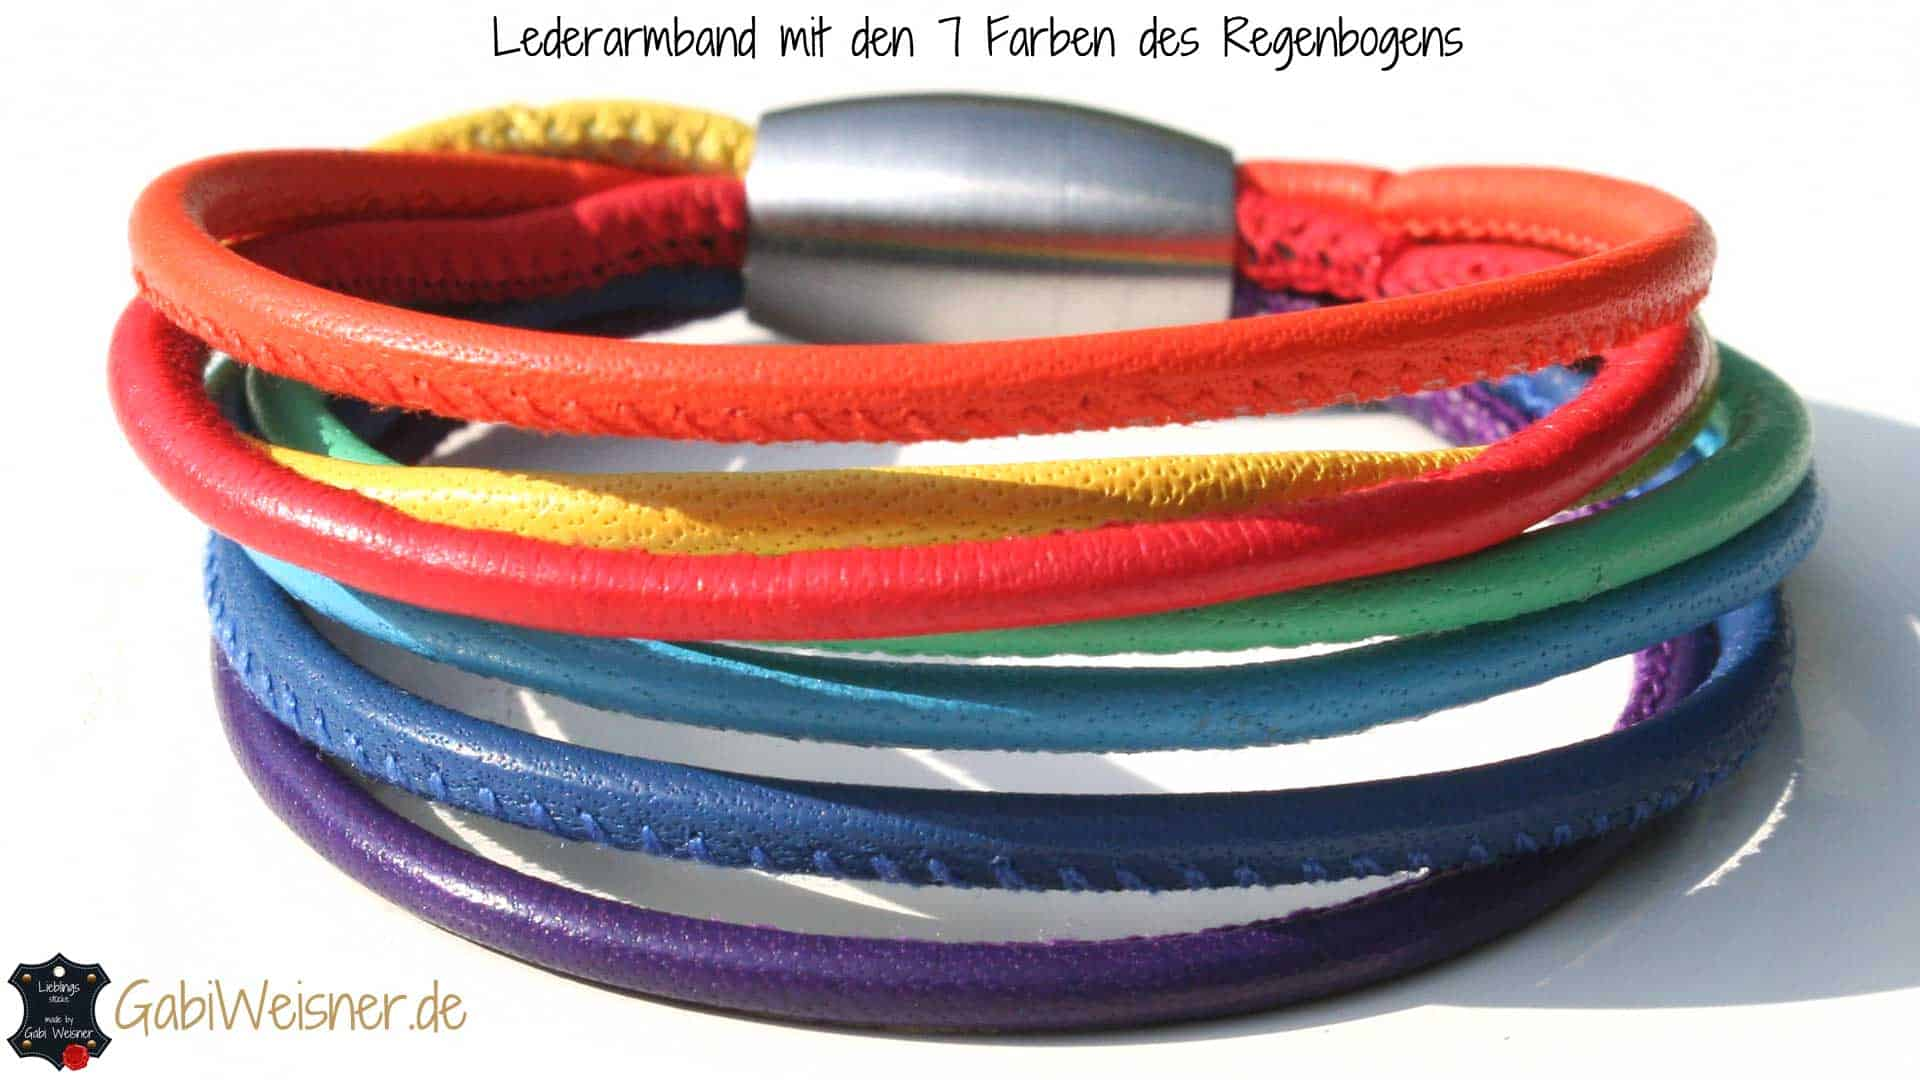 lederarmband regenbogen festival in kinder oder in bergr e. Black Bedroom Furniture Sets. Home Design Ideas